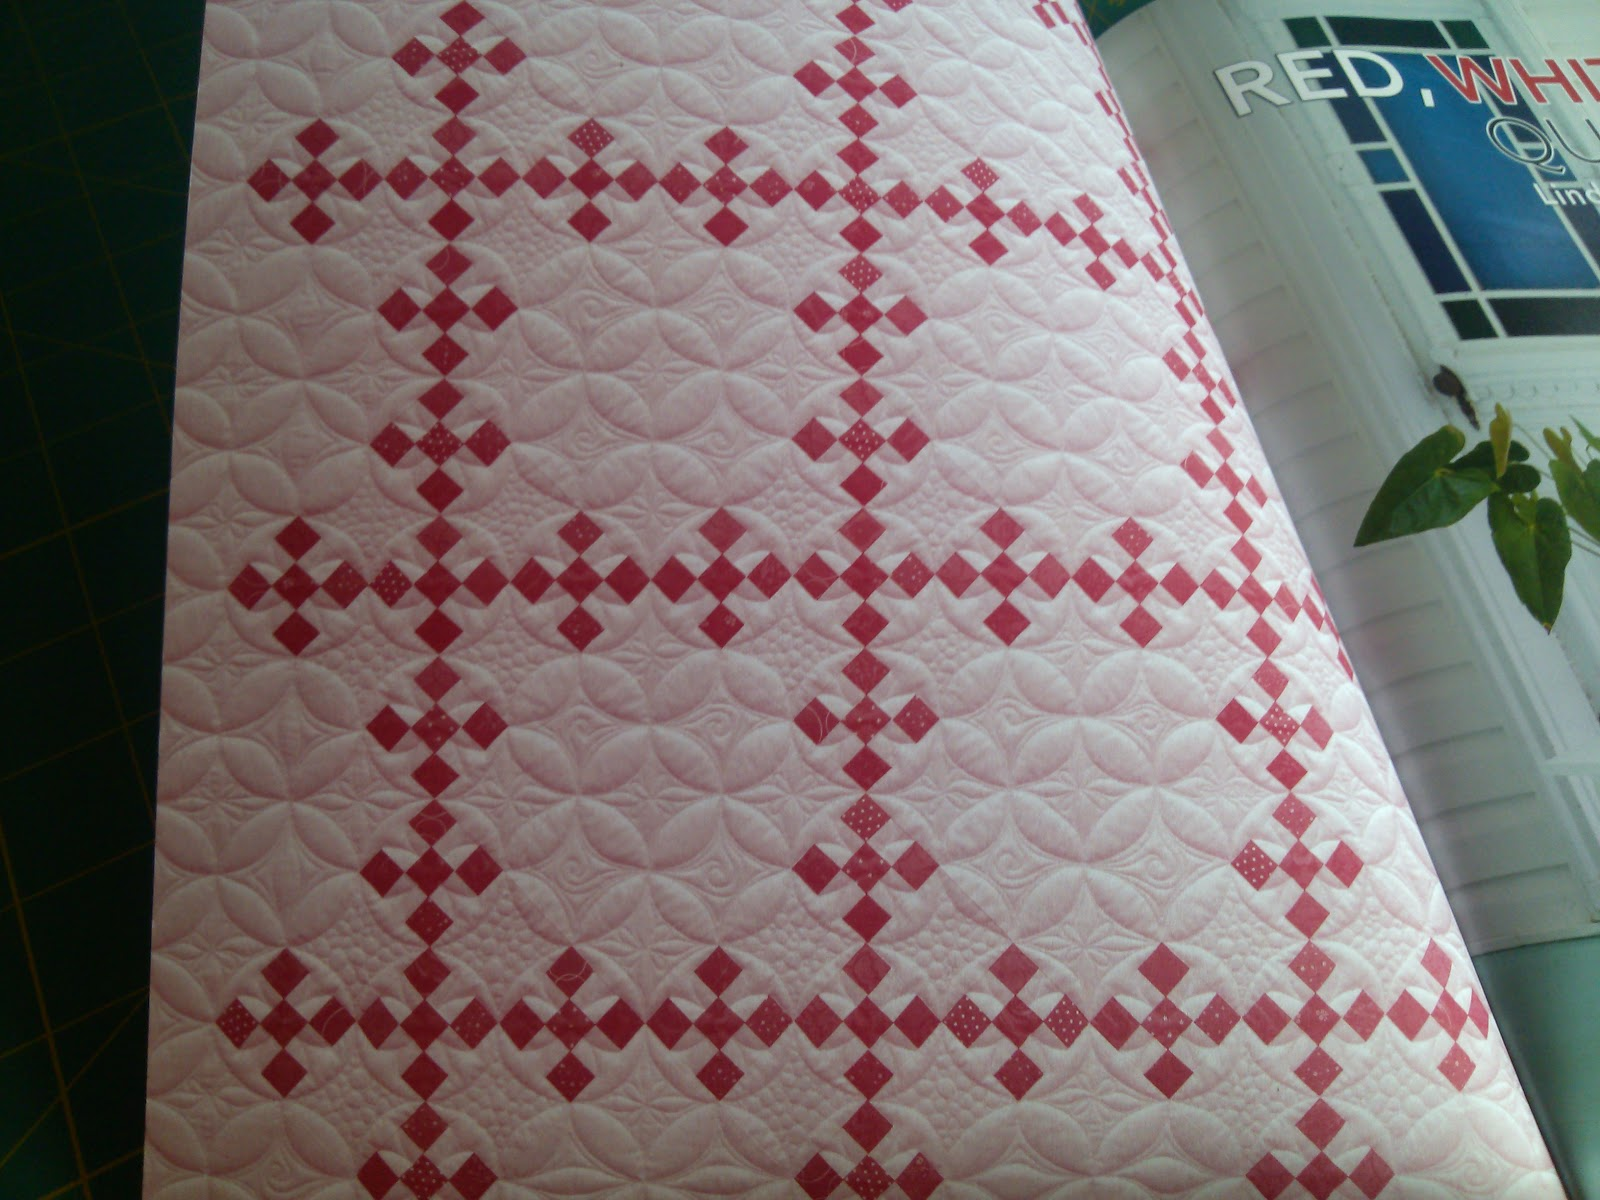 KISSed Quilts - Keeping It Simple and Stunning: Double Nine Patch : double nine patch quilt - Adamdwight.com